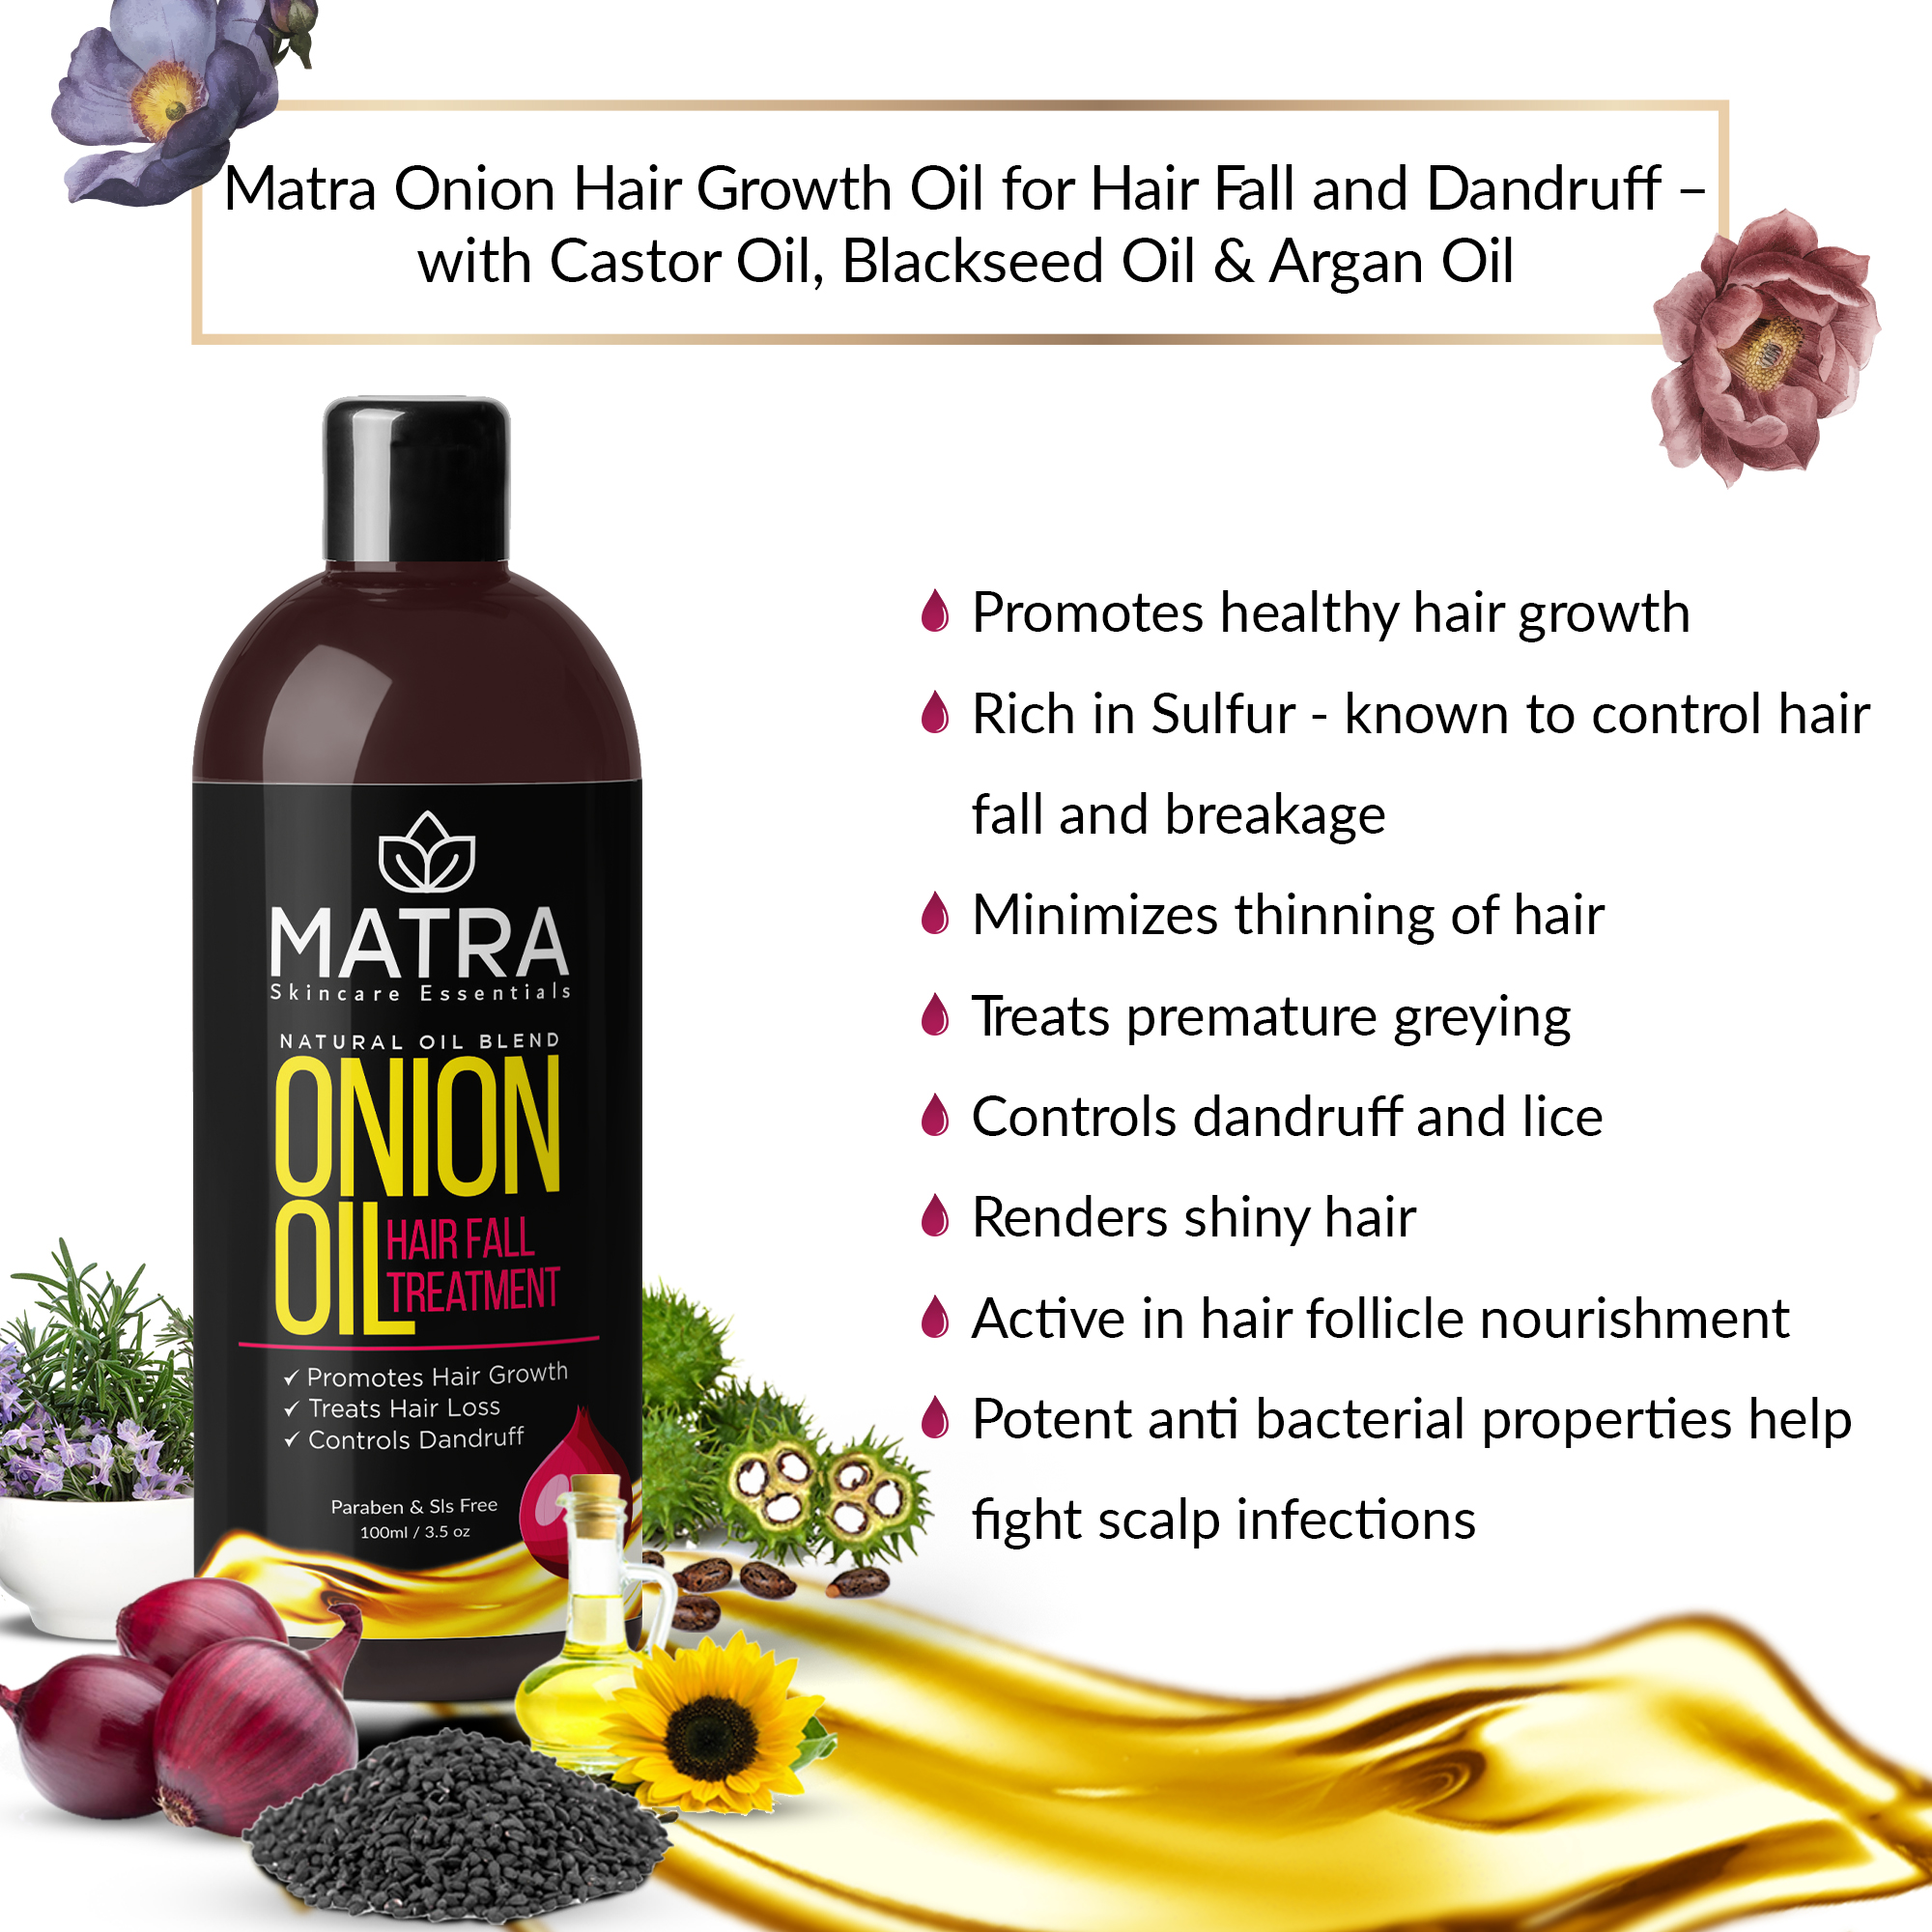 Buy Matra Onion Hair Oil for Hair Growth, Hair Fall & Dandruff Treatment